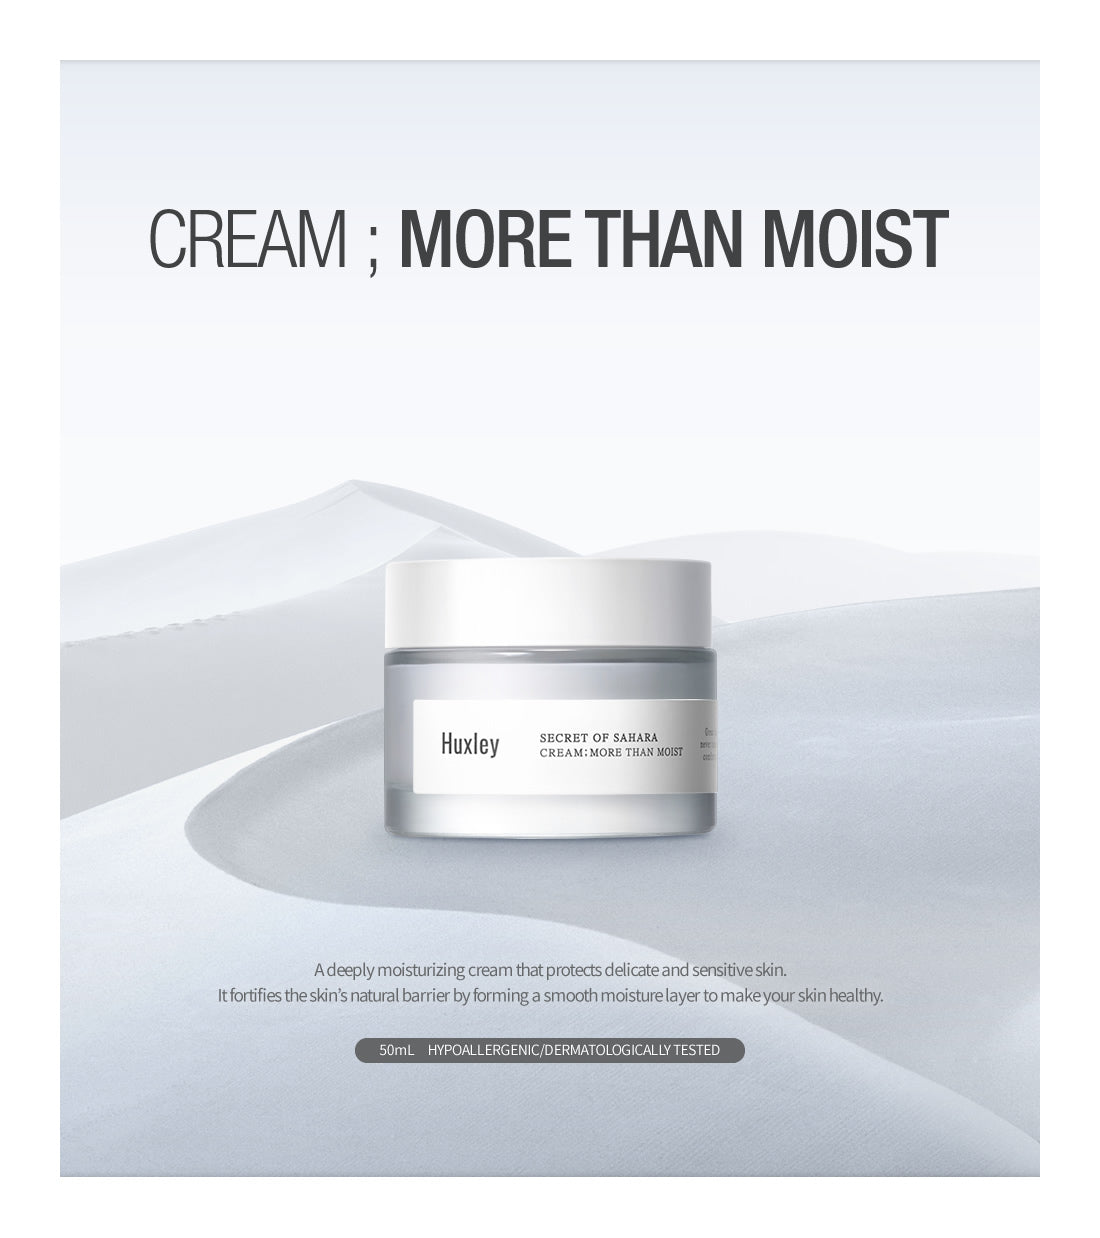 huxley more than moist cream review